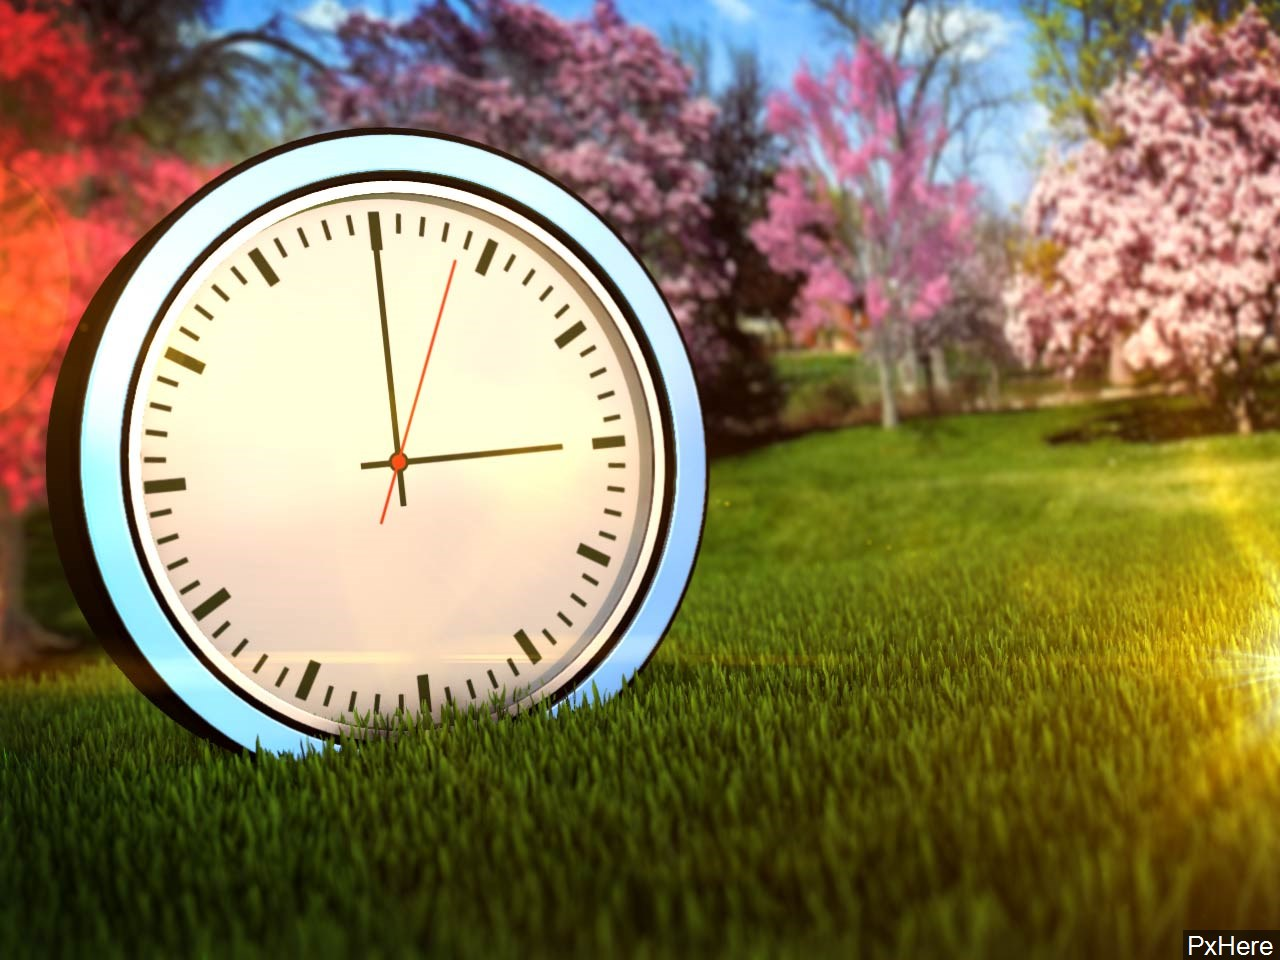 Daylight Saving Time takes effect this weekend.